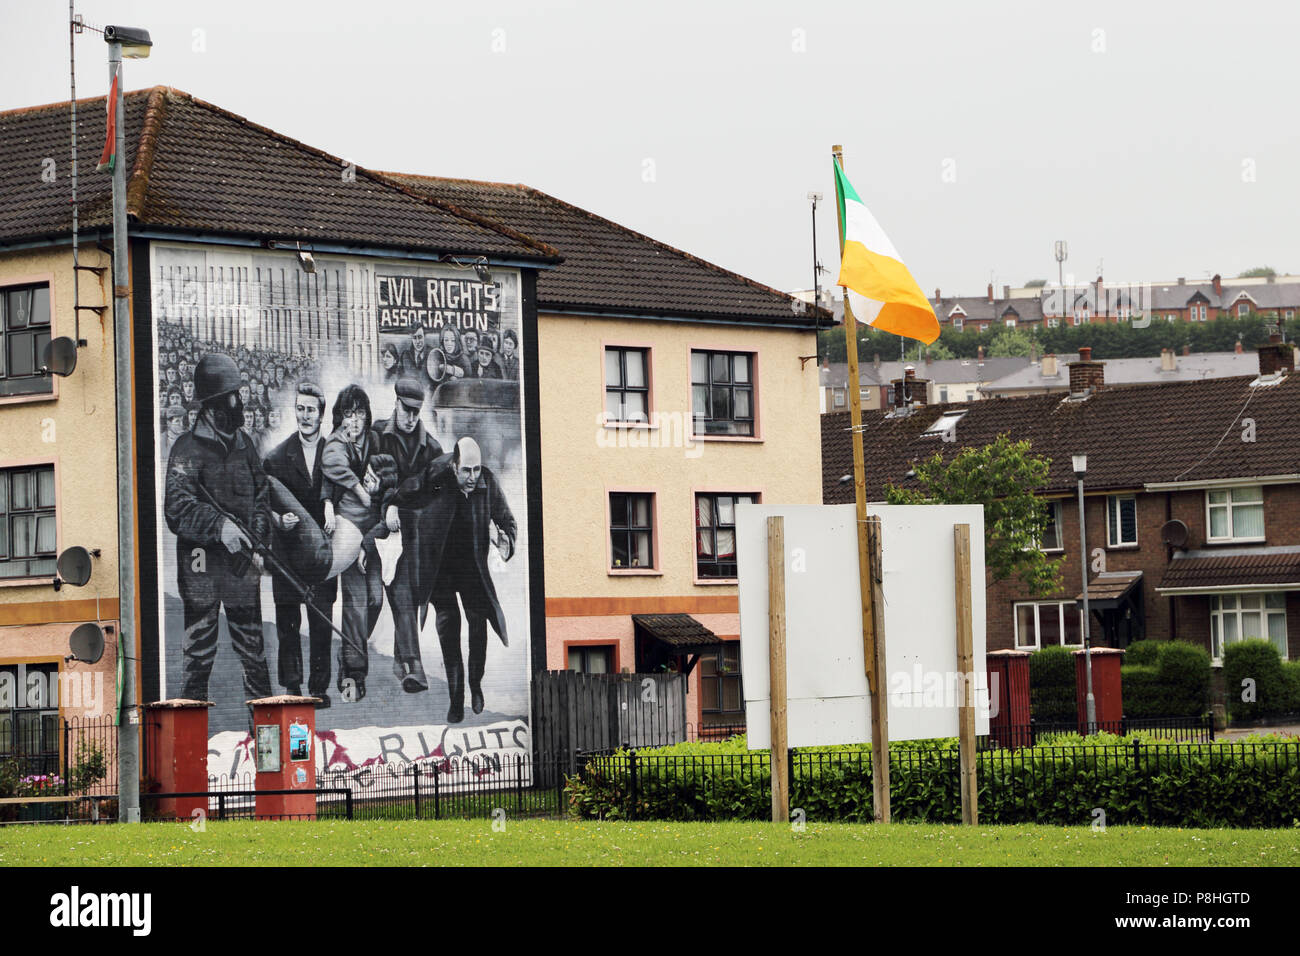 Glennfada Park, site of the Bloody Sunday massacre of 1972 and mural painted in memorial to that day - Stock Image